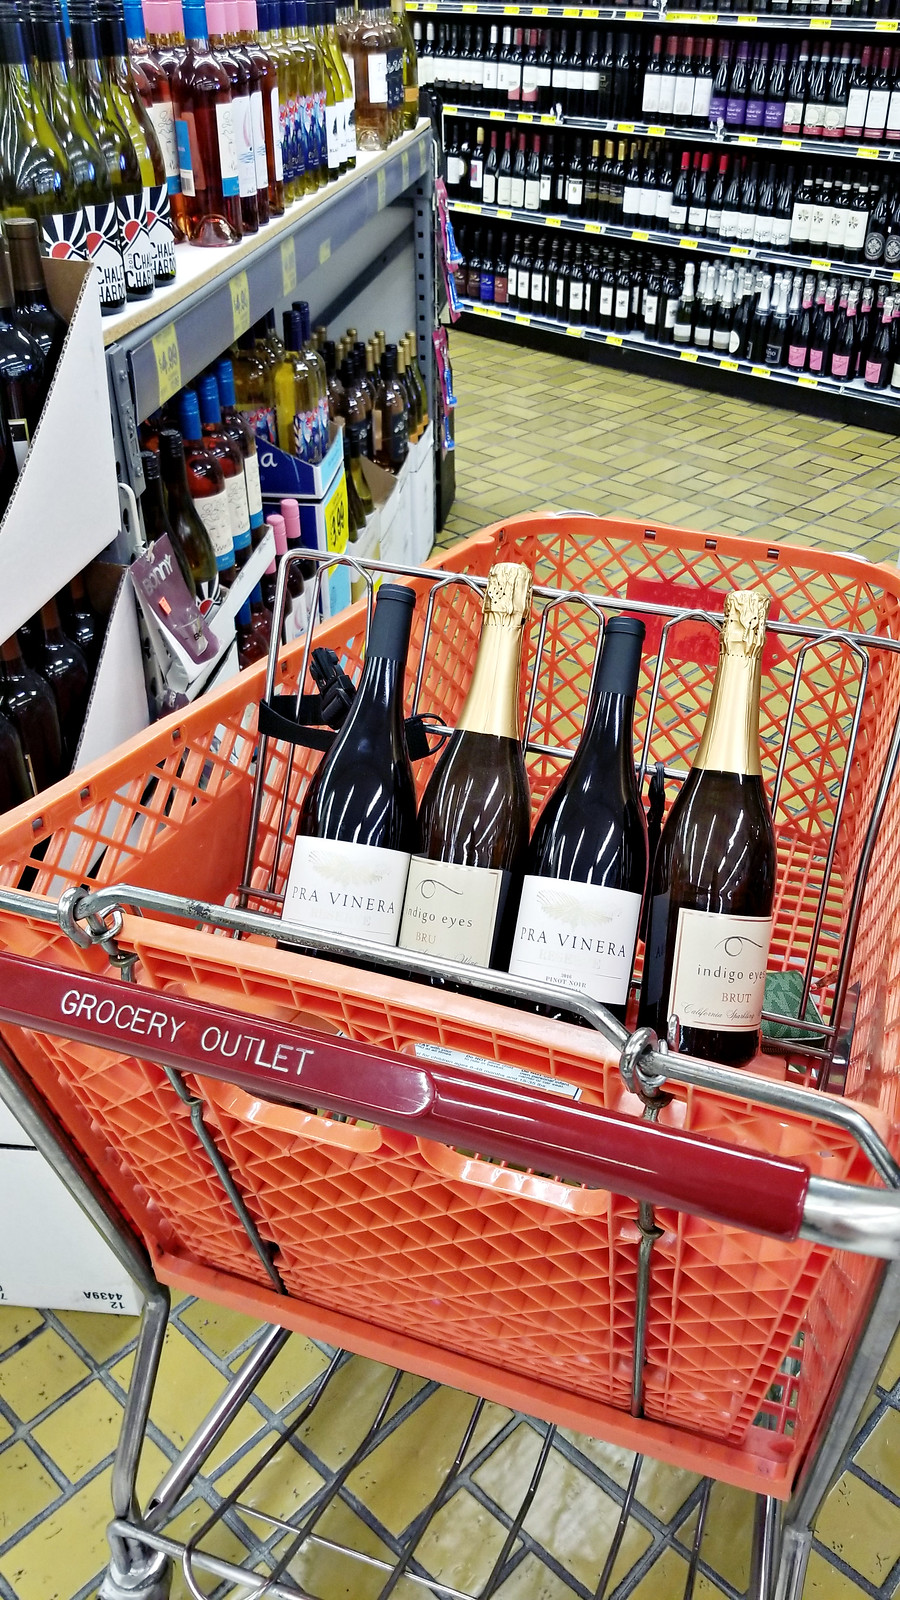 grocery outlet wines